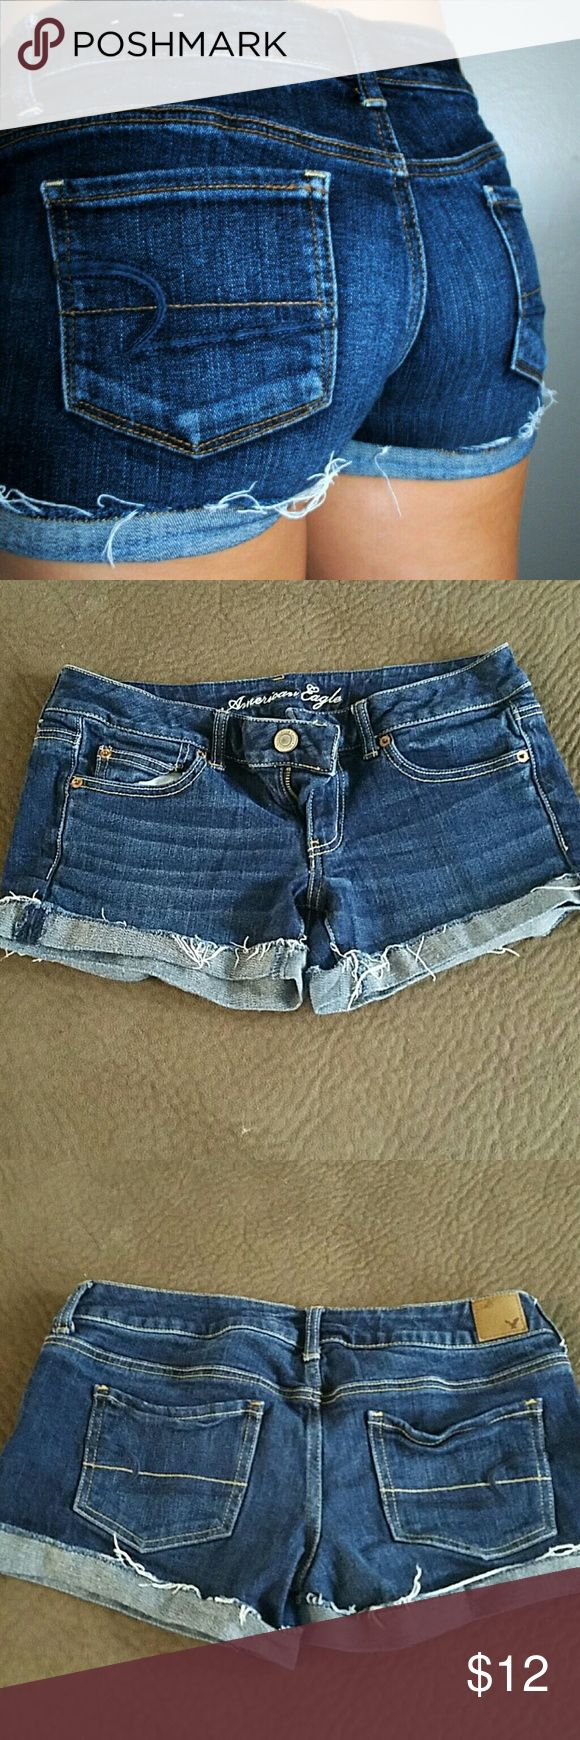 AE stretch jean shorts Size 6 stretch jean shorts from American Eagle. The hem on the bottom is folded up and is meant to fray with wear. EUC. American Eagle Outfitters Shorts Jean Shorts